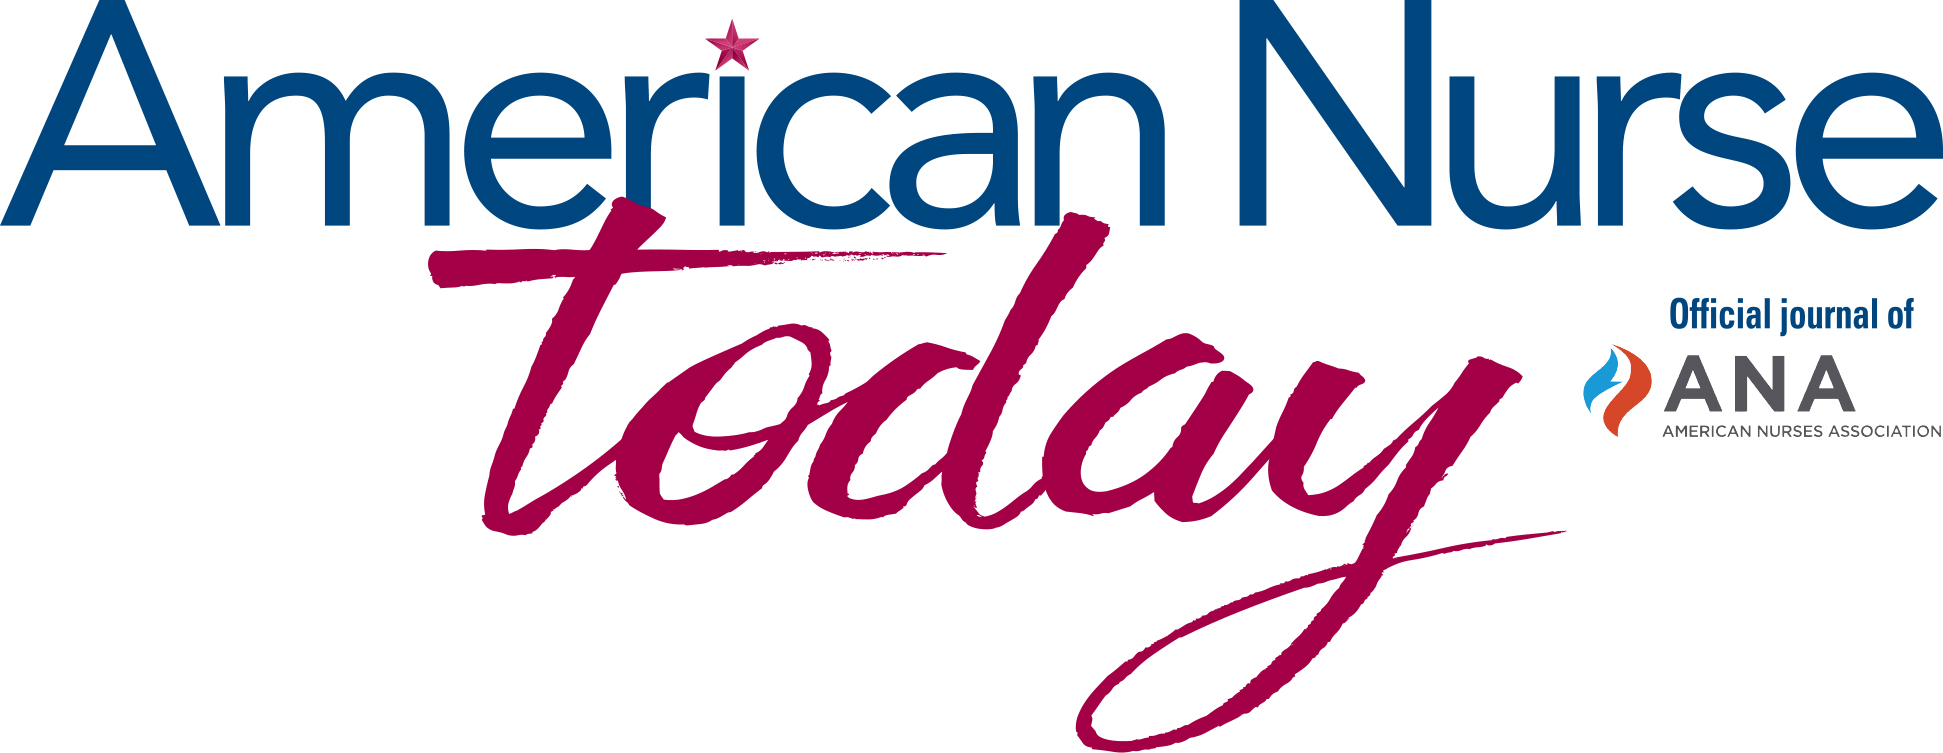 American Nurse Today official Journal of the American Nurses